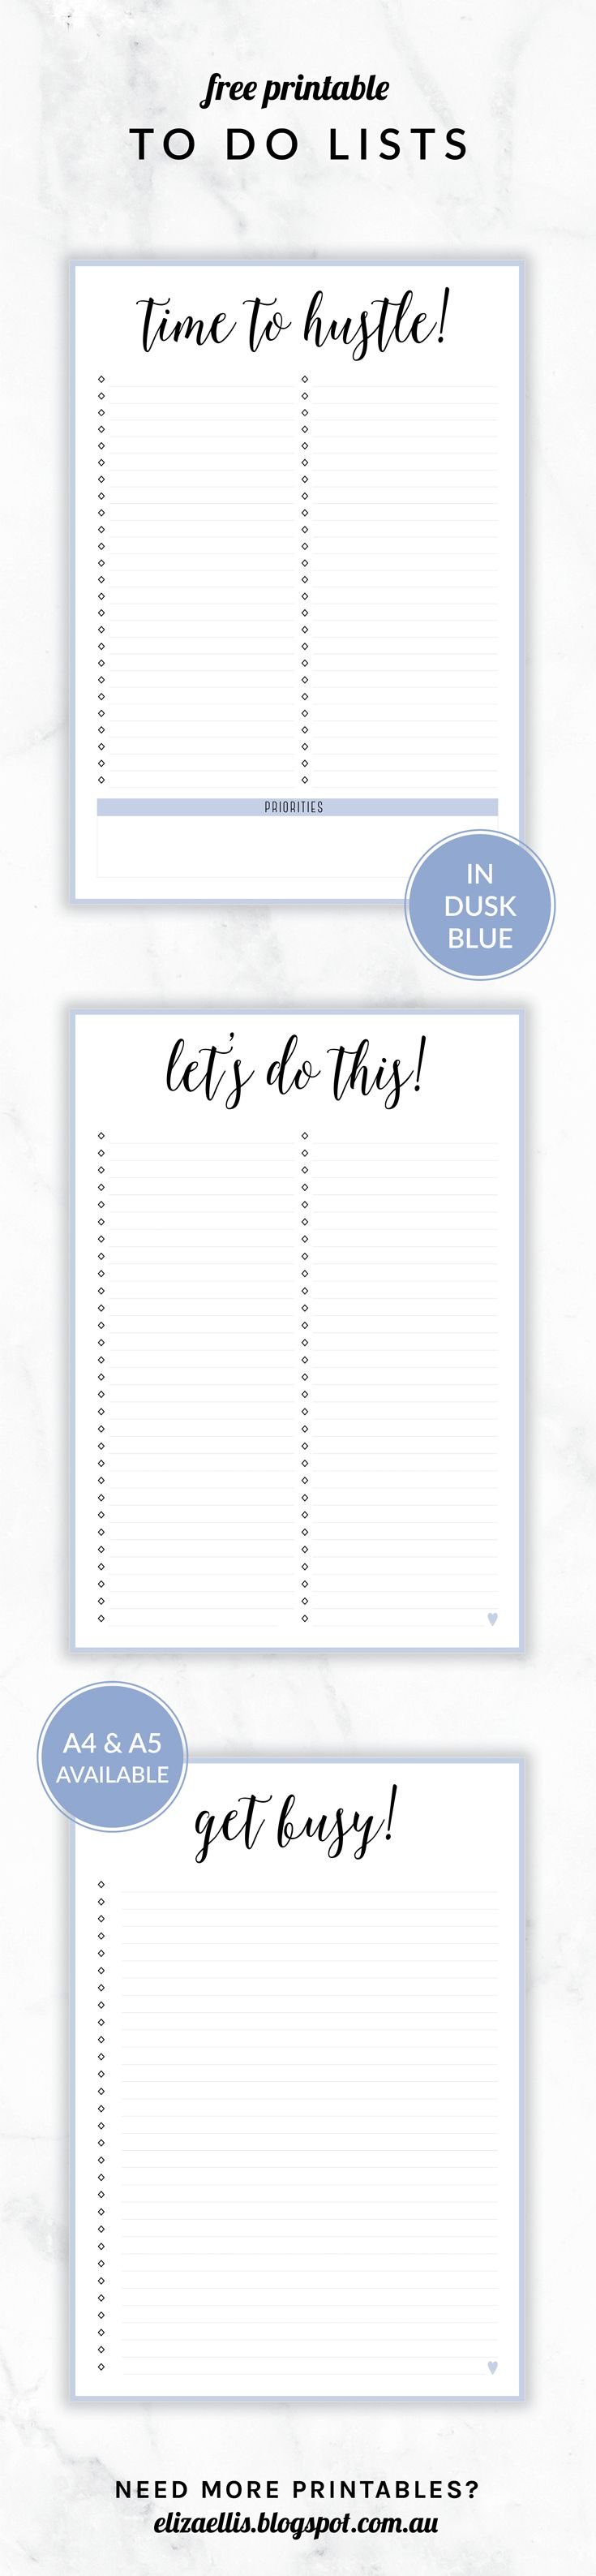 // Eliza Ellis    Free Printable Irma To Do Lists. Available in 3 Designs, 6 Colors and in both A4 and A5 sizes.